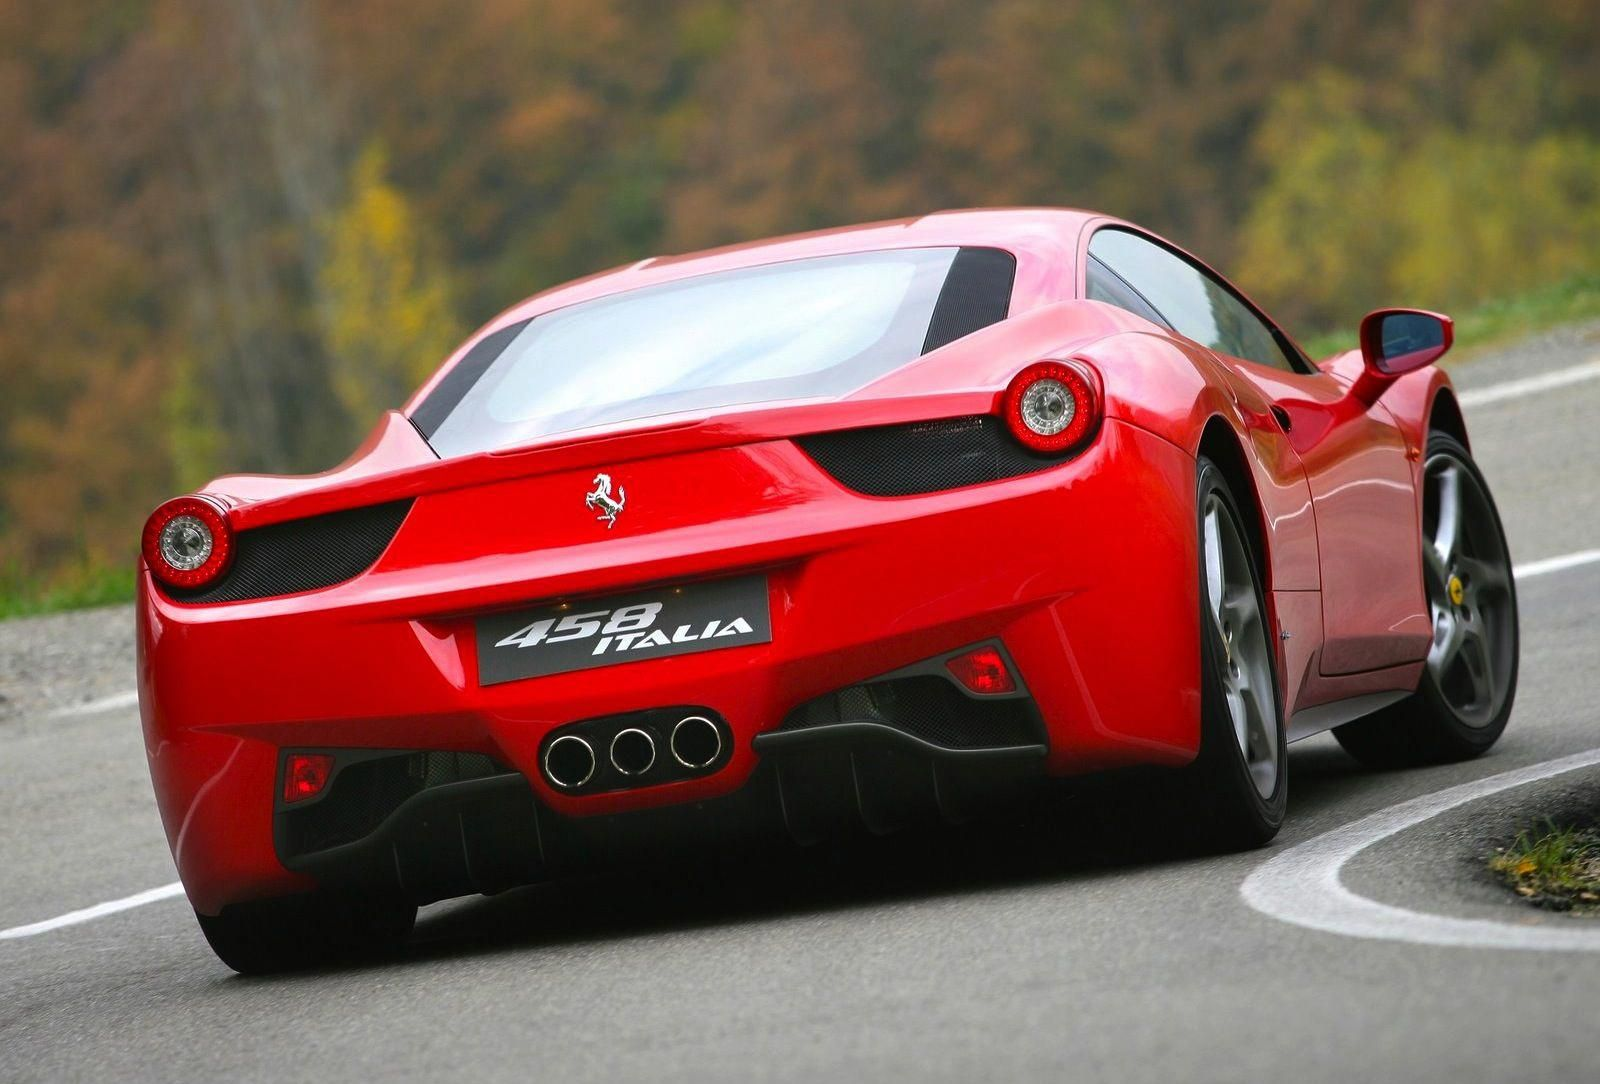 Ferrarienzowallpapers Ferrari 458 Ferrari Car